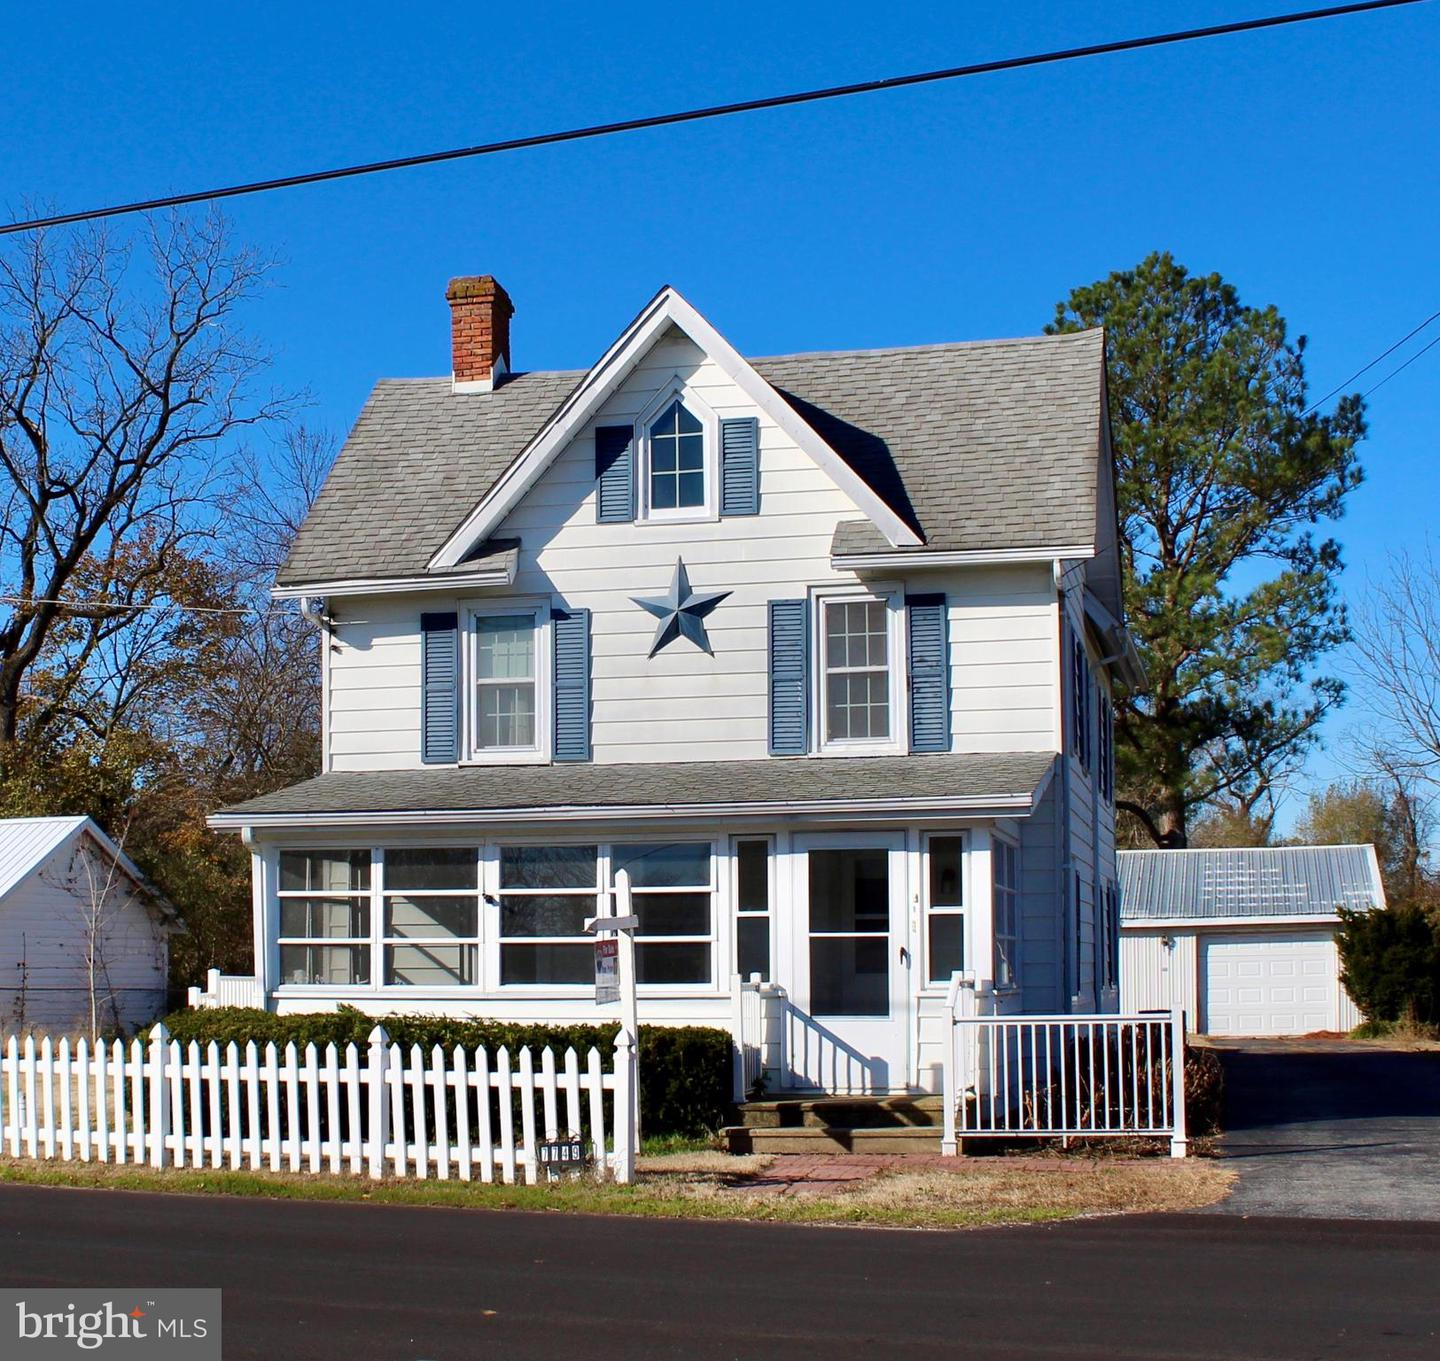 View this Bethel, Delaware Listing - Real Estate and Home Sales